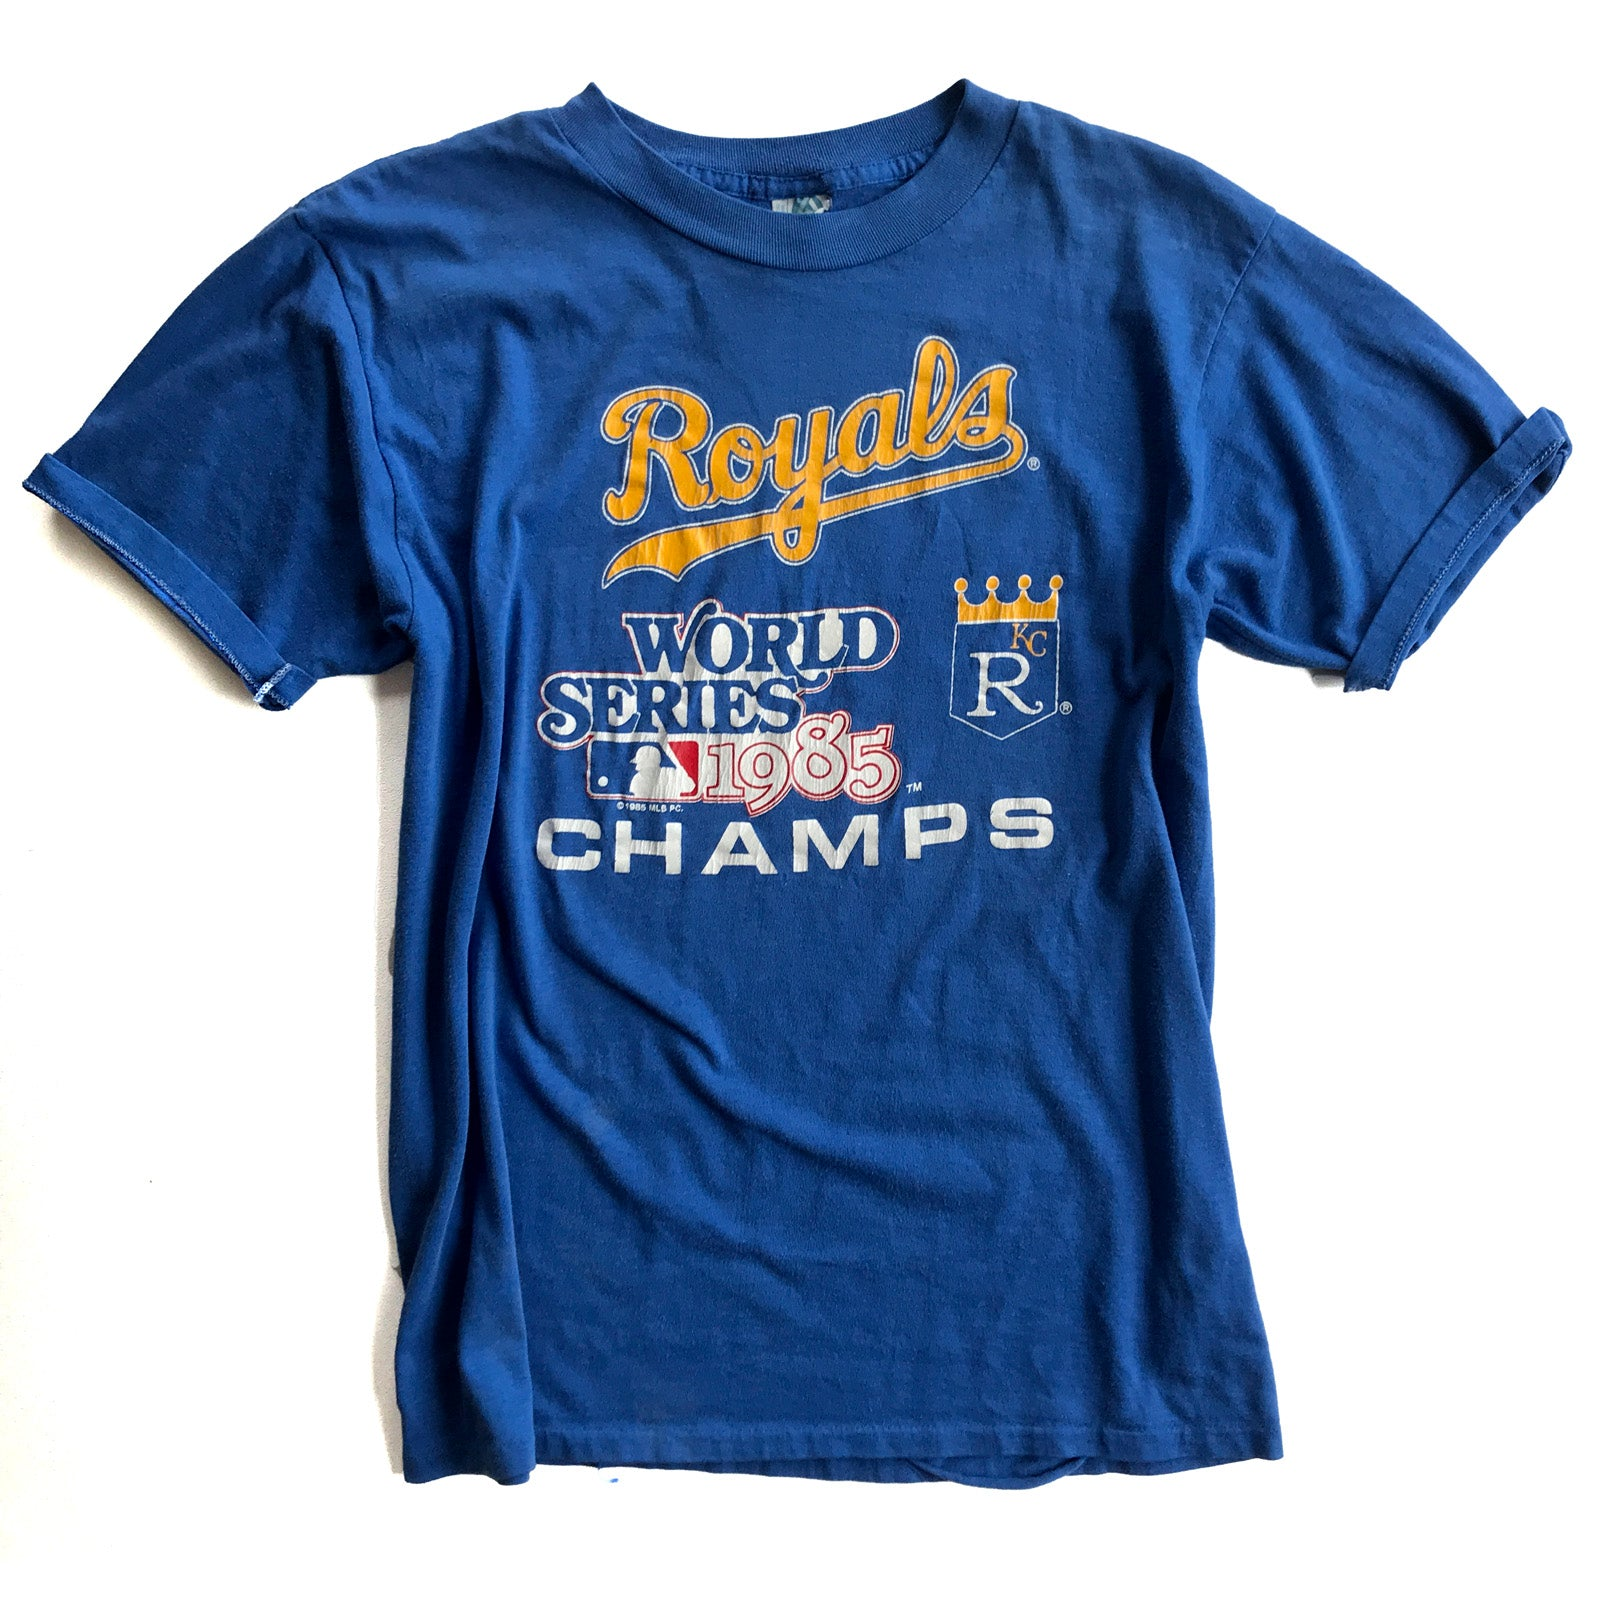 low priced 5be45 e9b29 WESTSIDE STOREY VINTAGE | 1985 WORLD SERIES CHAMPIONS KANSAS CITY ROYALS  T-SHIRT